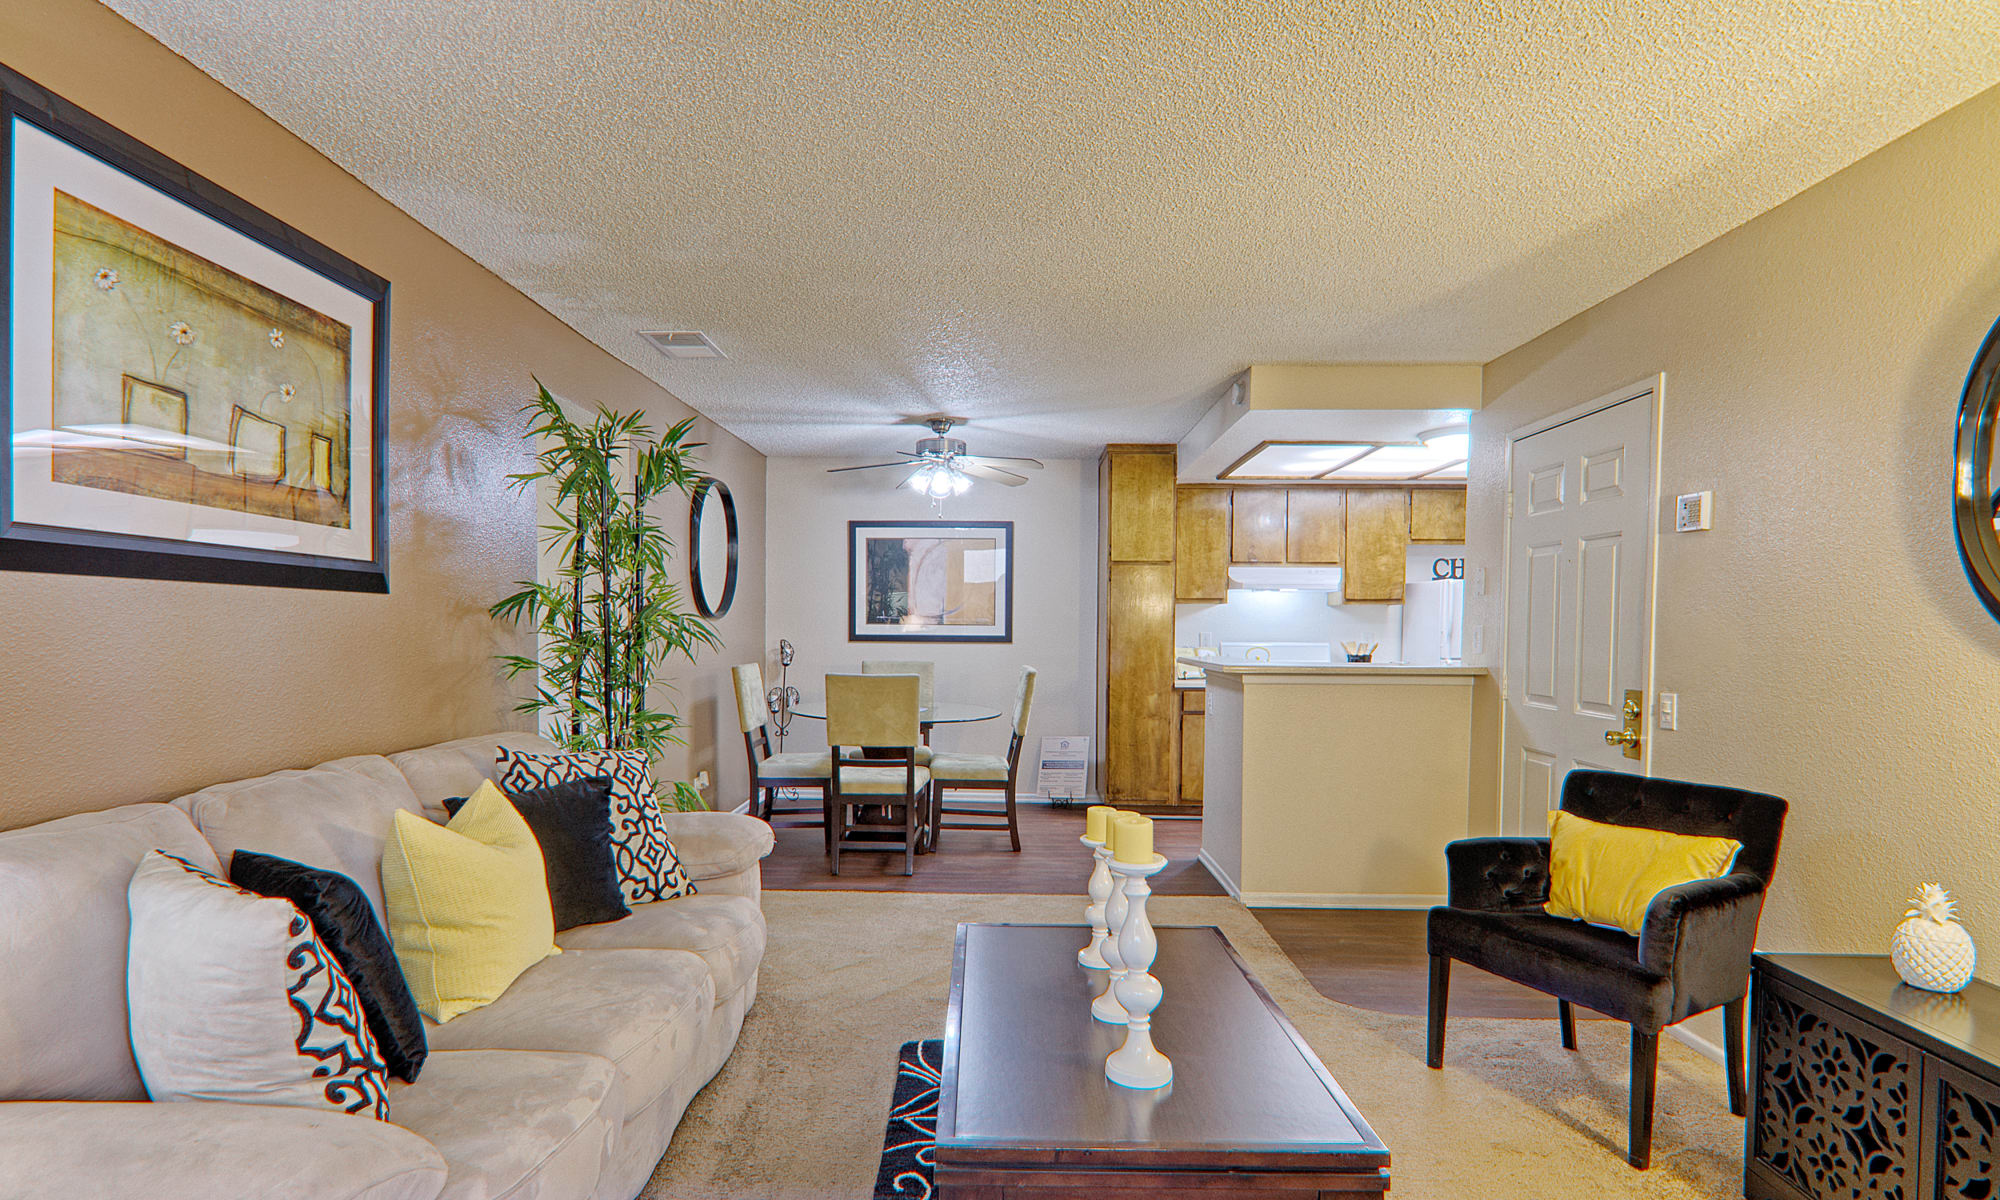 Learn more about Cordova Park Apartment Homes at Cordova Park Apartment Homes in Lancaster